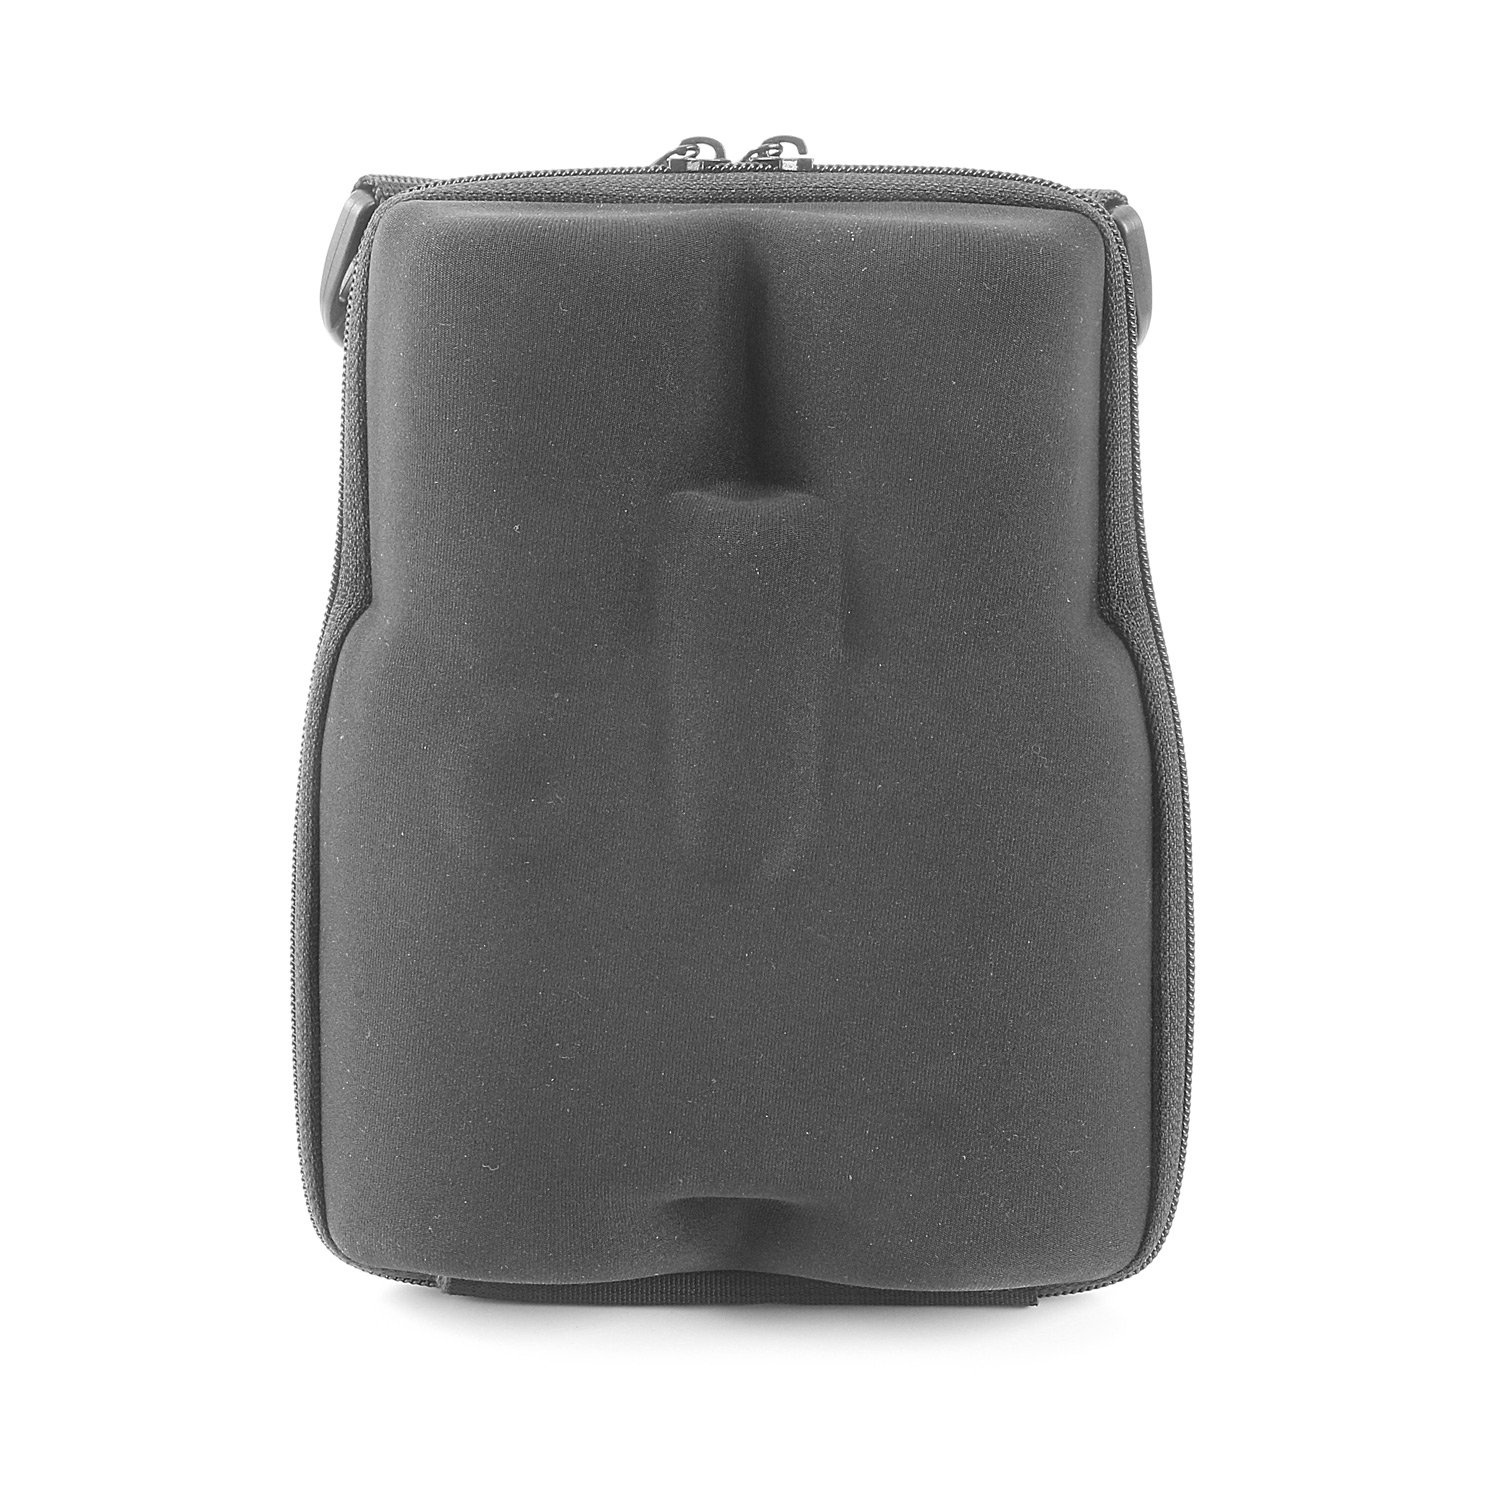 Molded Foam Case For Canon 18x50 IS Binoculars Case For Canon Binoculars Portable Sleeve Box Bag Travel Case Canon Traveling Surf To Summit by Surf To Summit